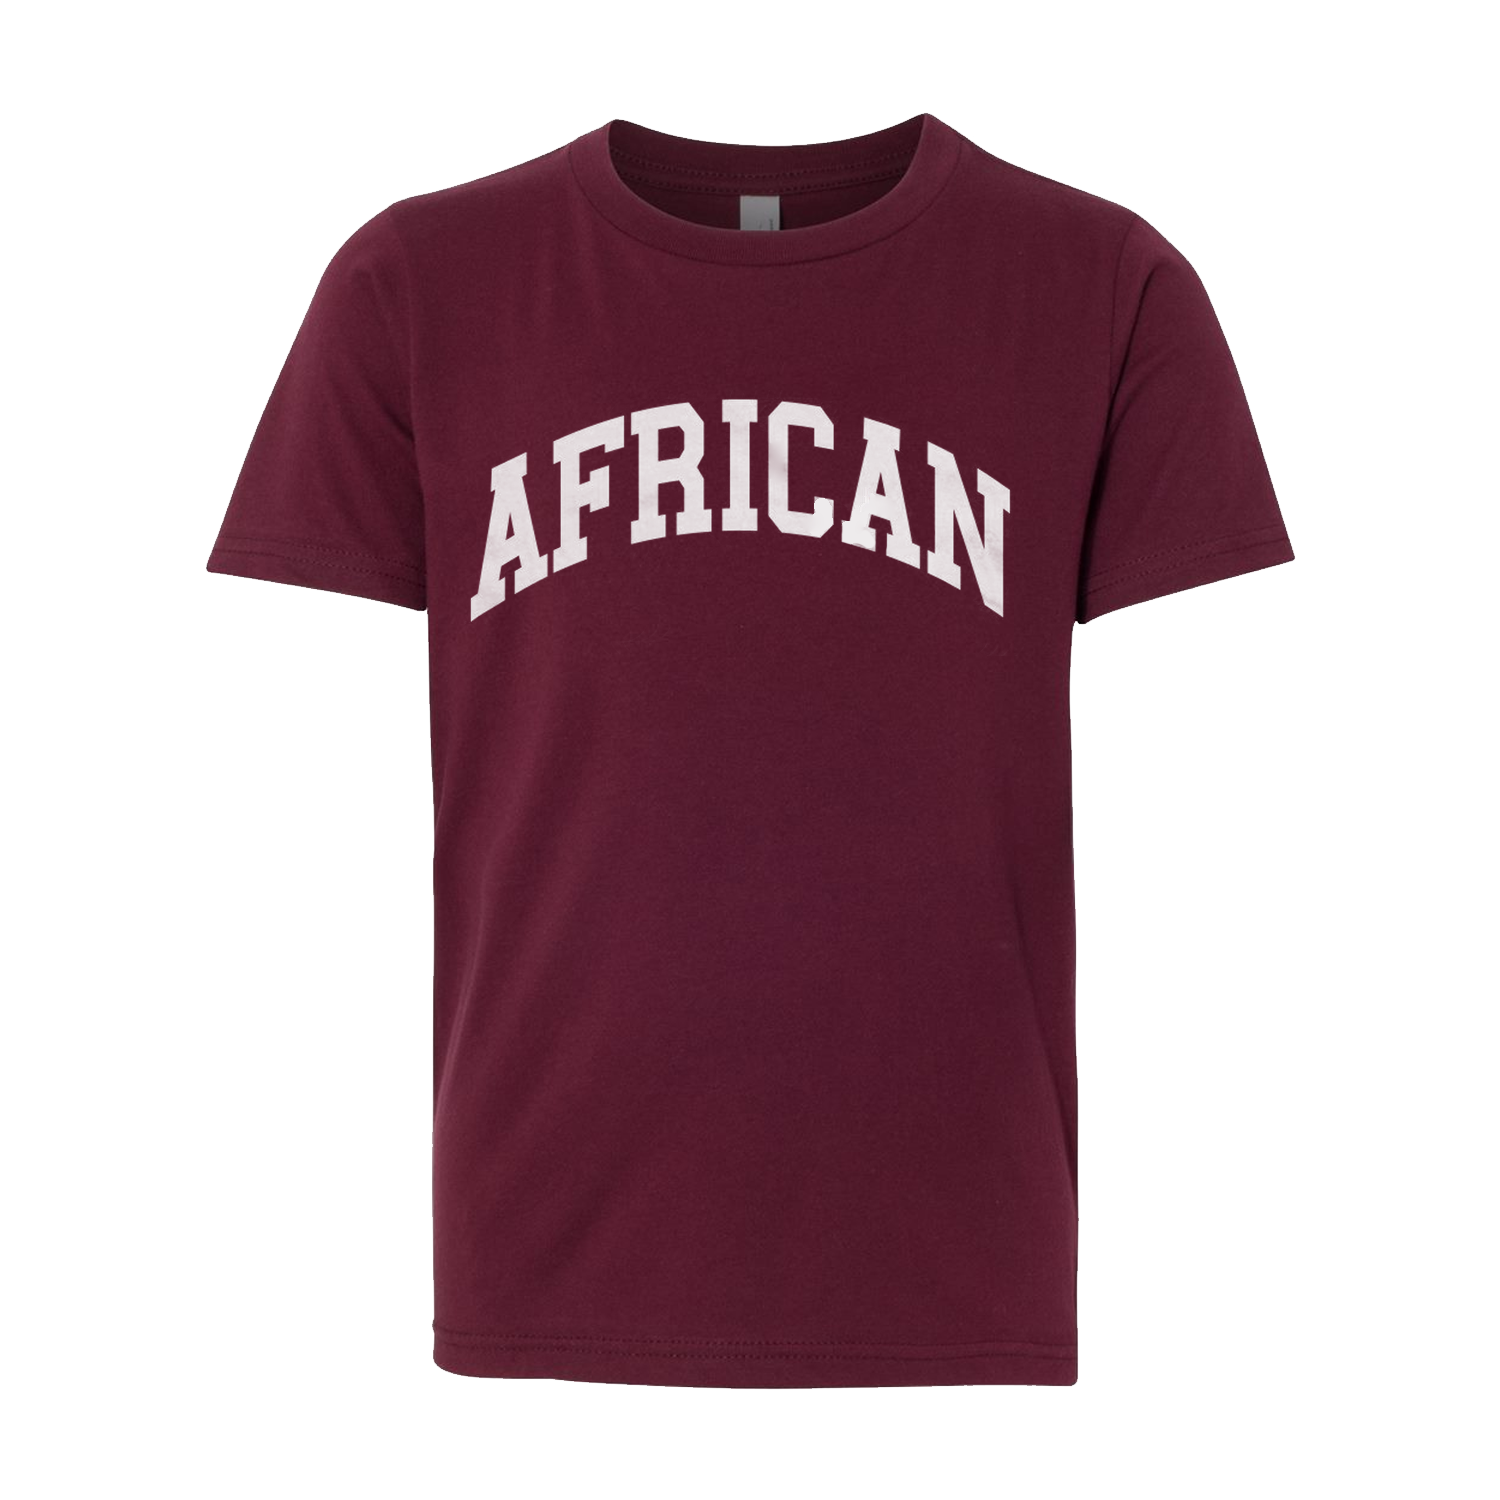 AFRICAN Uni Youth Tee